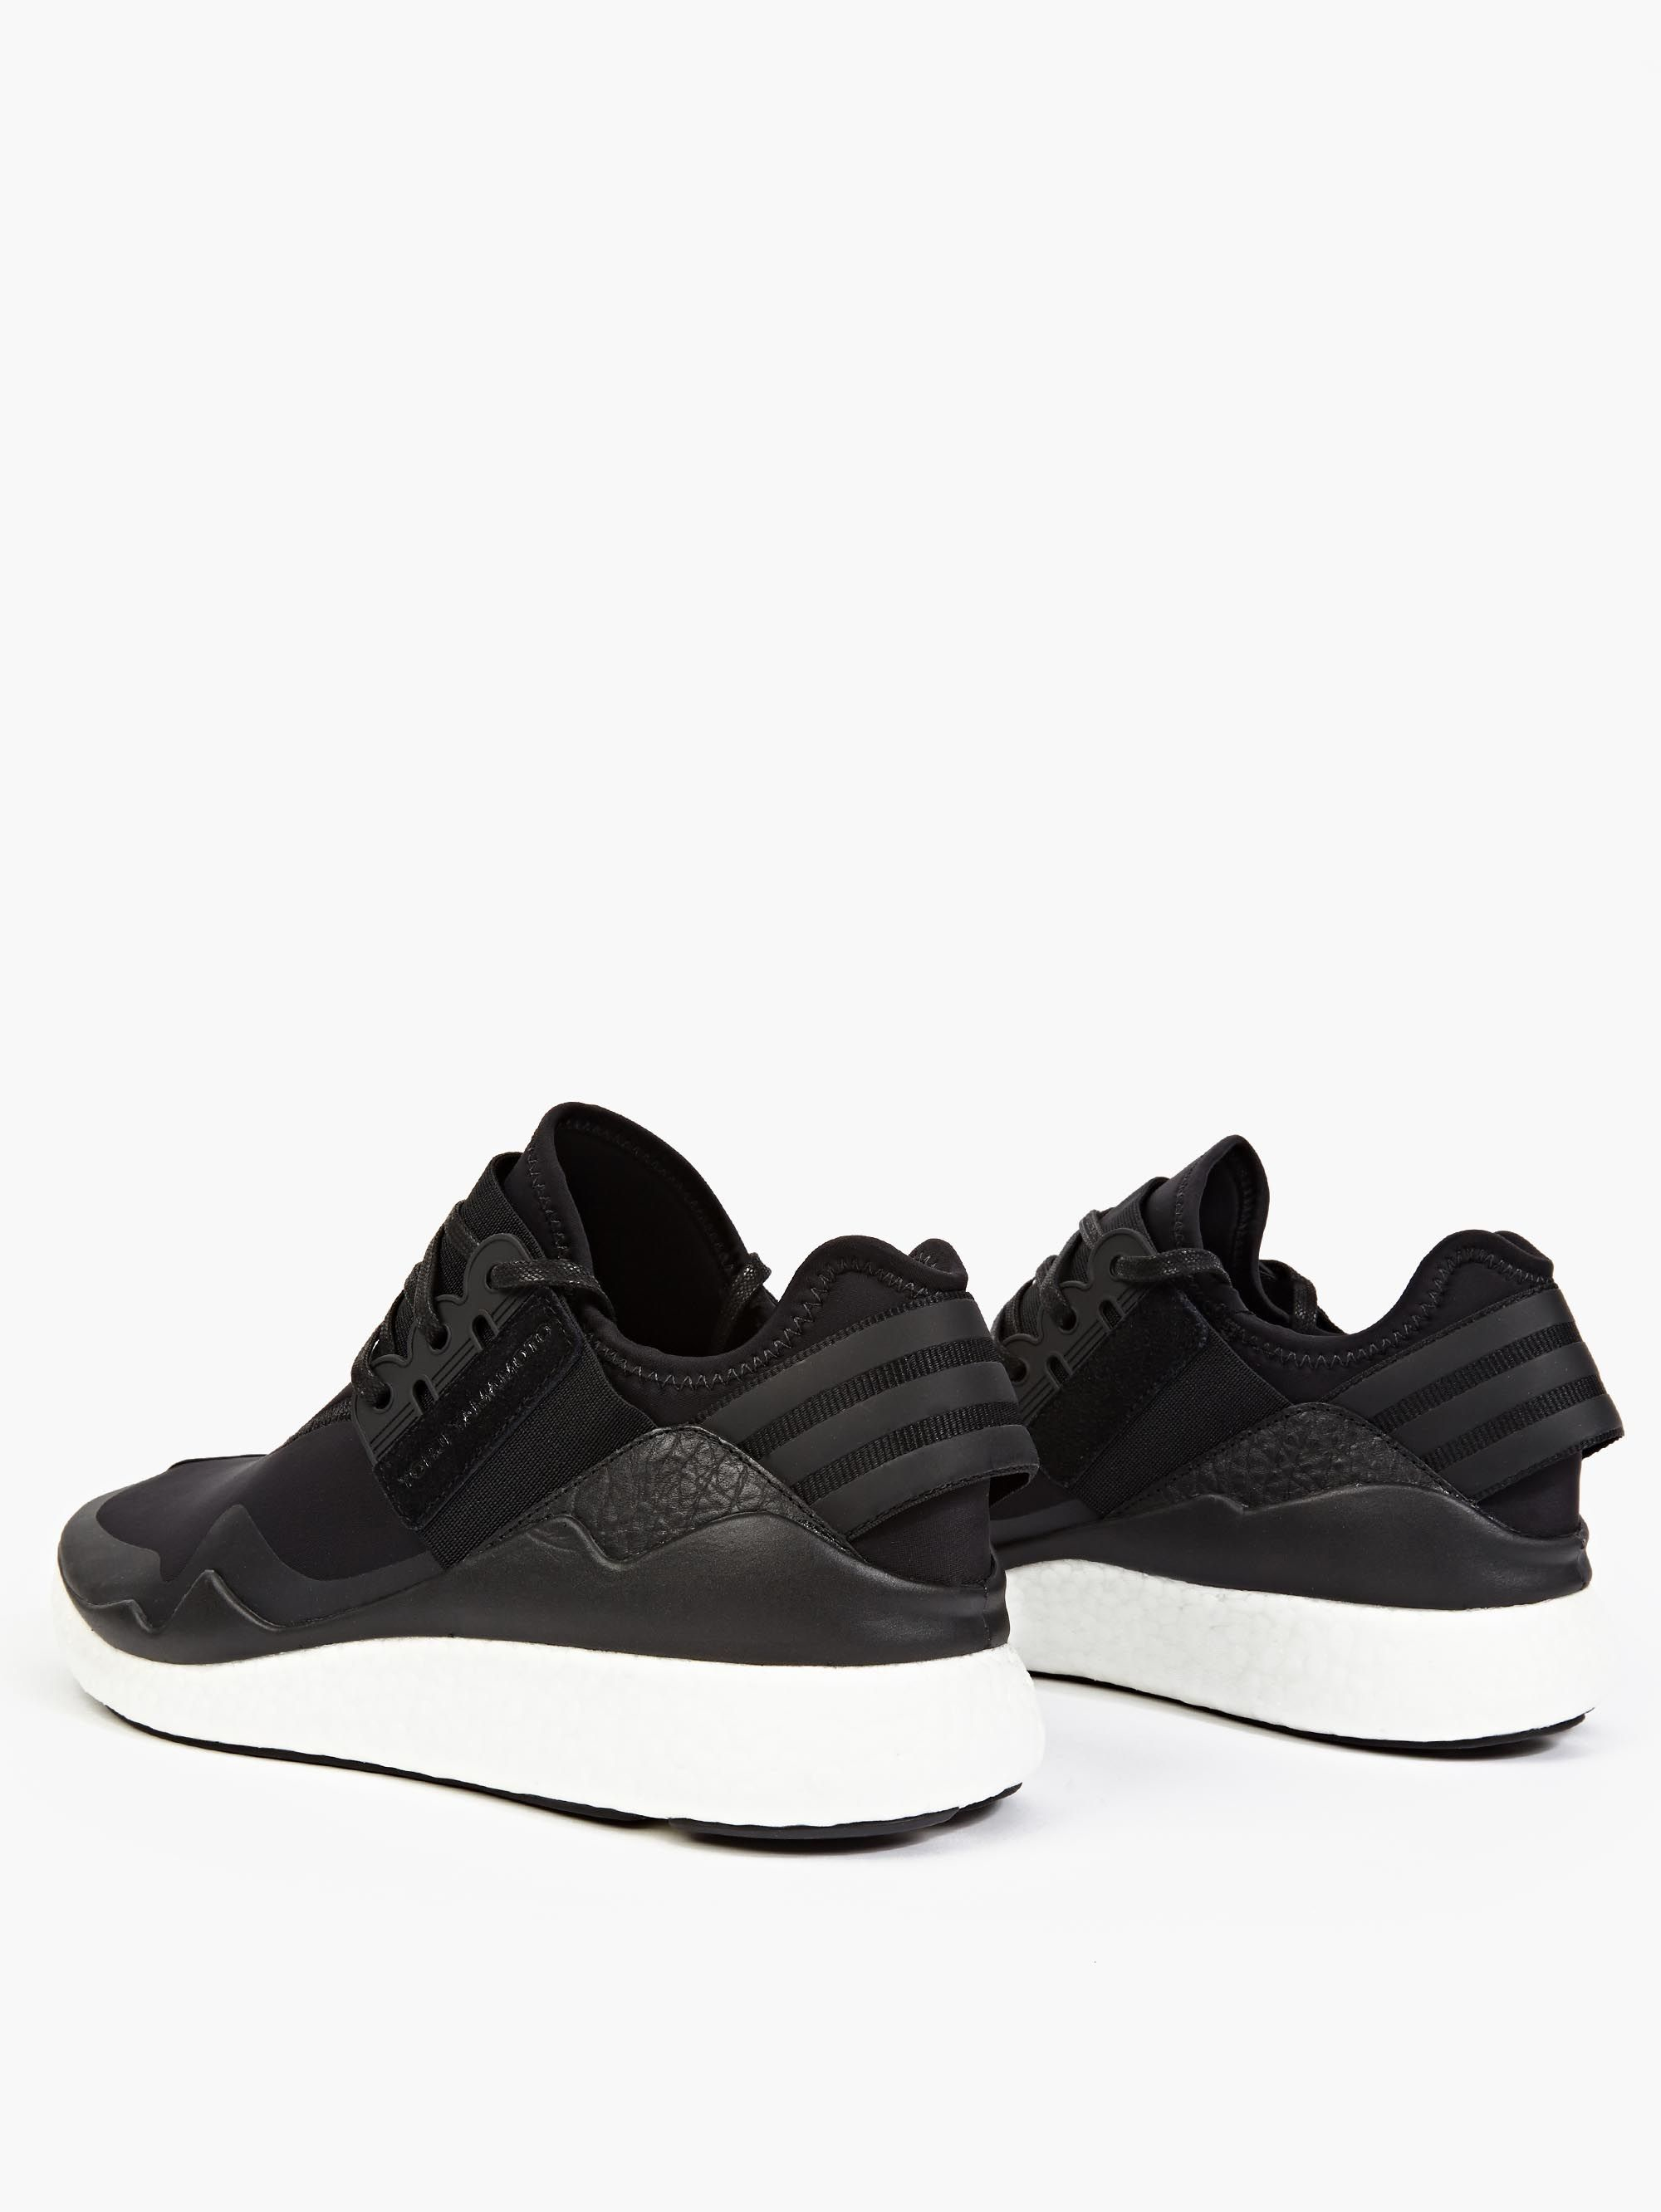 y 3 black retro boost sneakers in black for men lyst. Black Bedroom Furniture Sets. Home Design Ideas